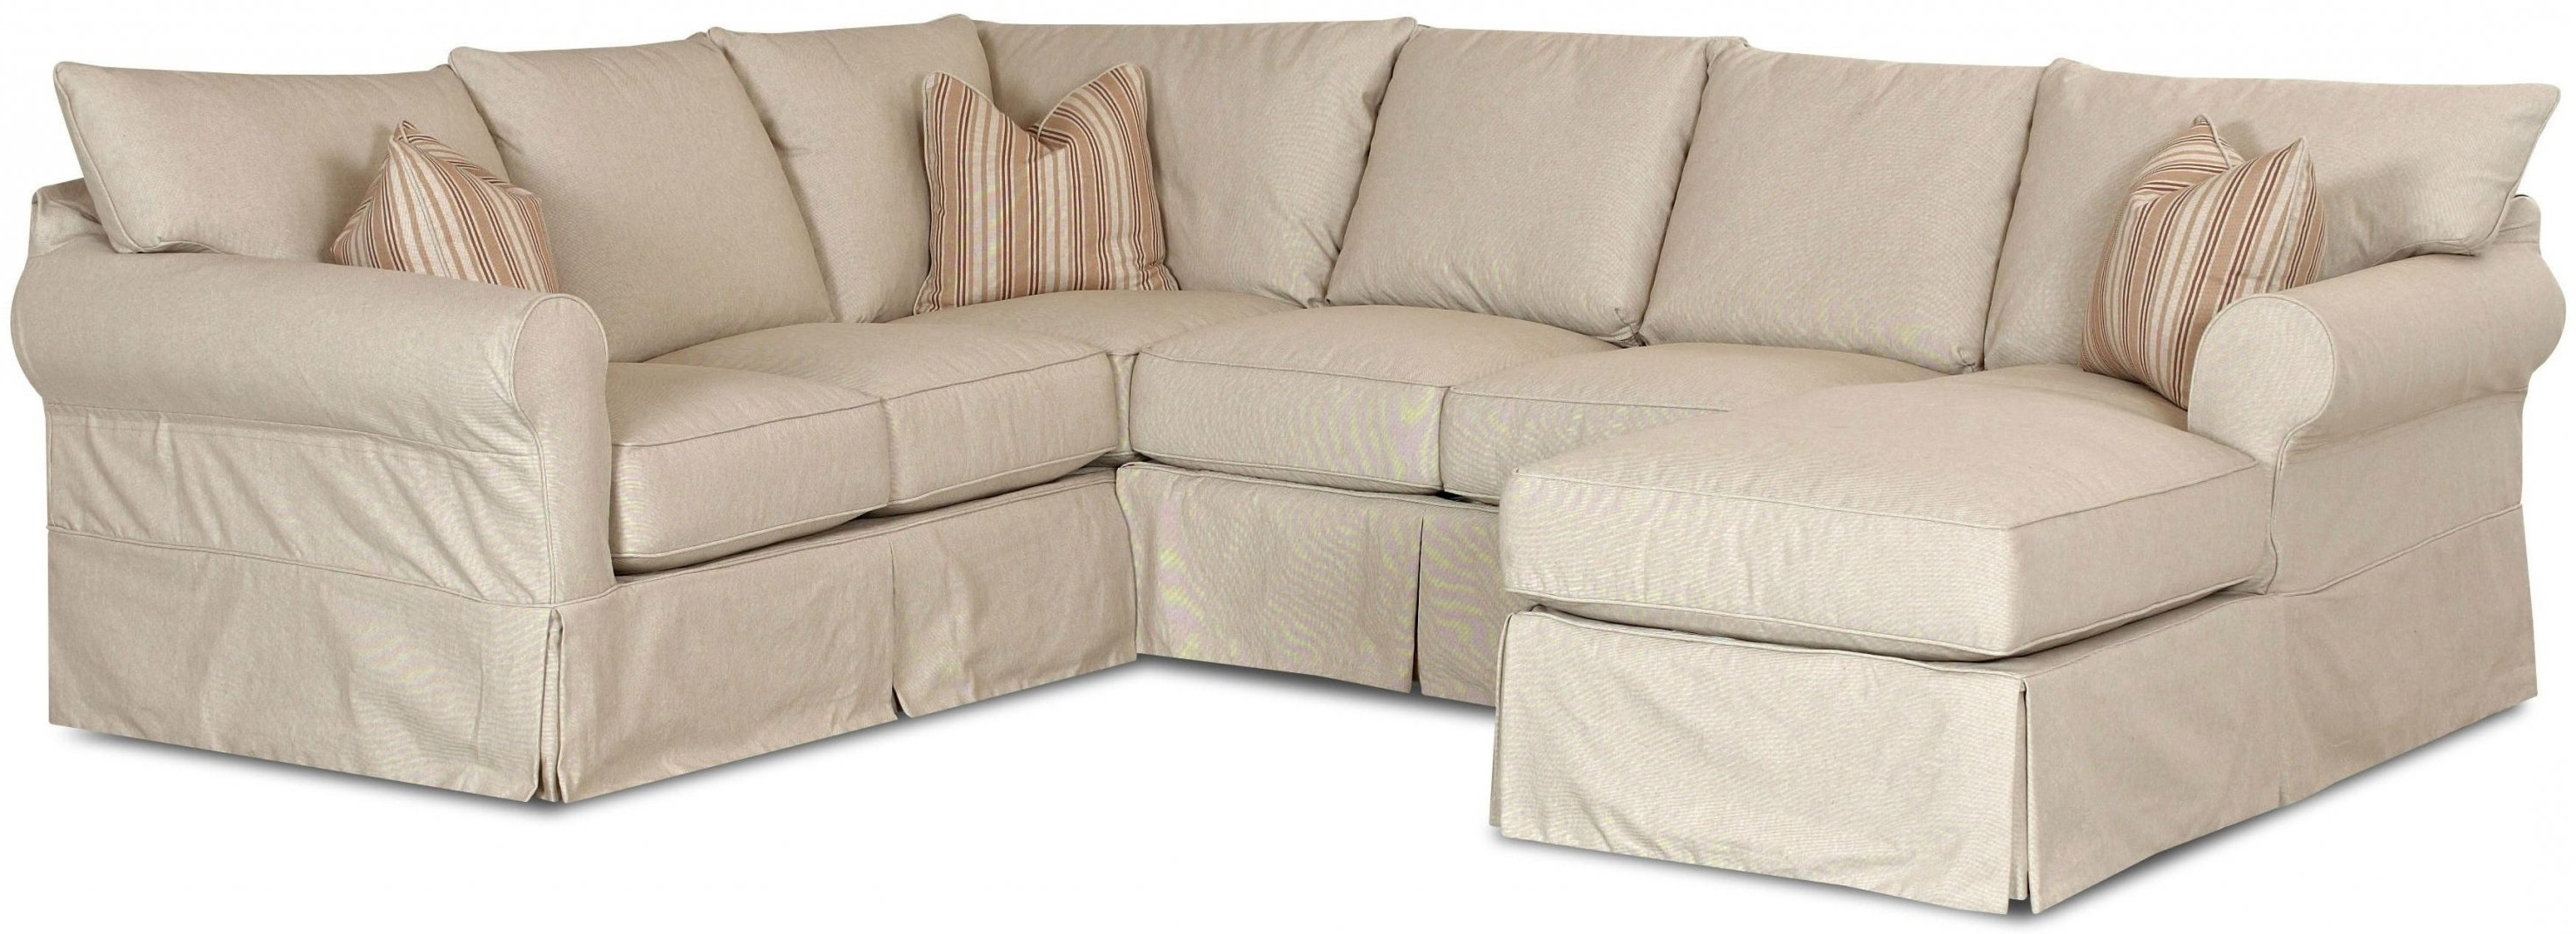 Most Popular Sectional Sofa Covers Http Ml2R Com Pinterest Chaise Lounge Throughout Chaise Sofa Covers (View 7 of 15)